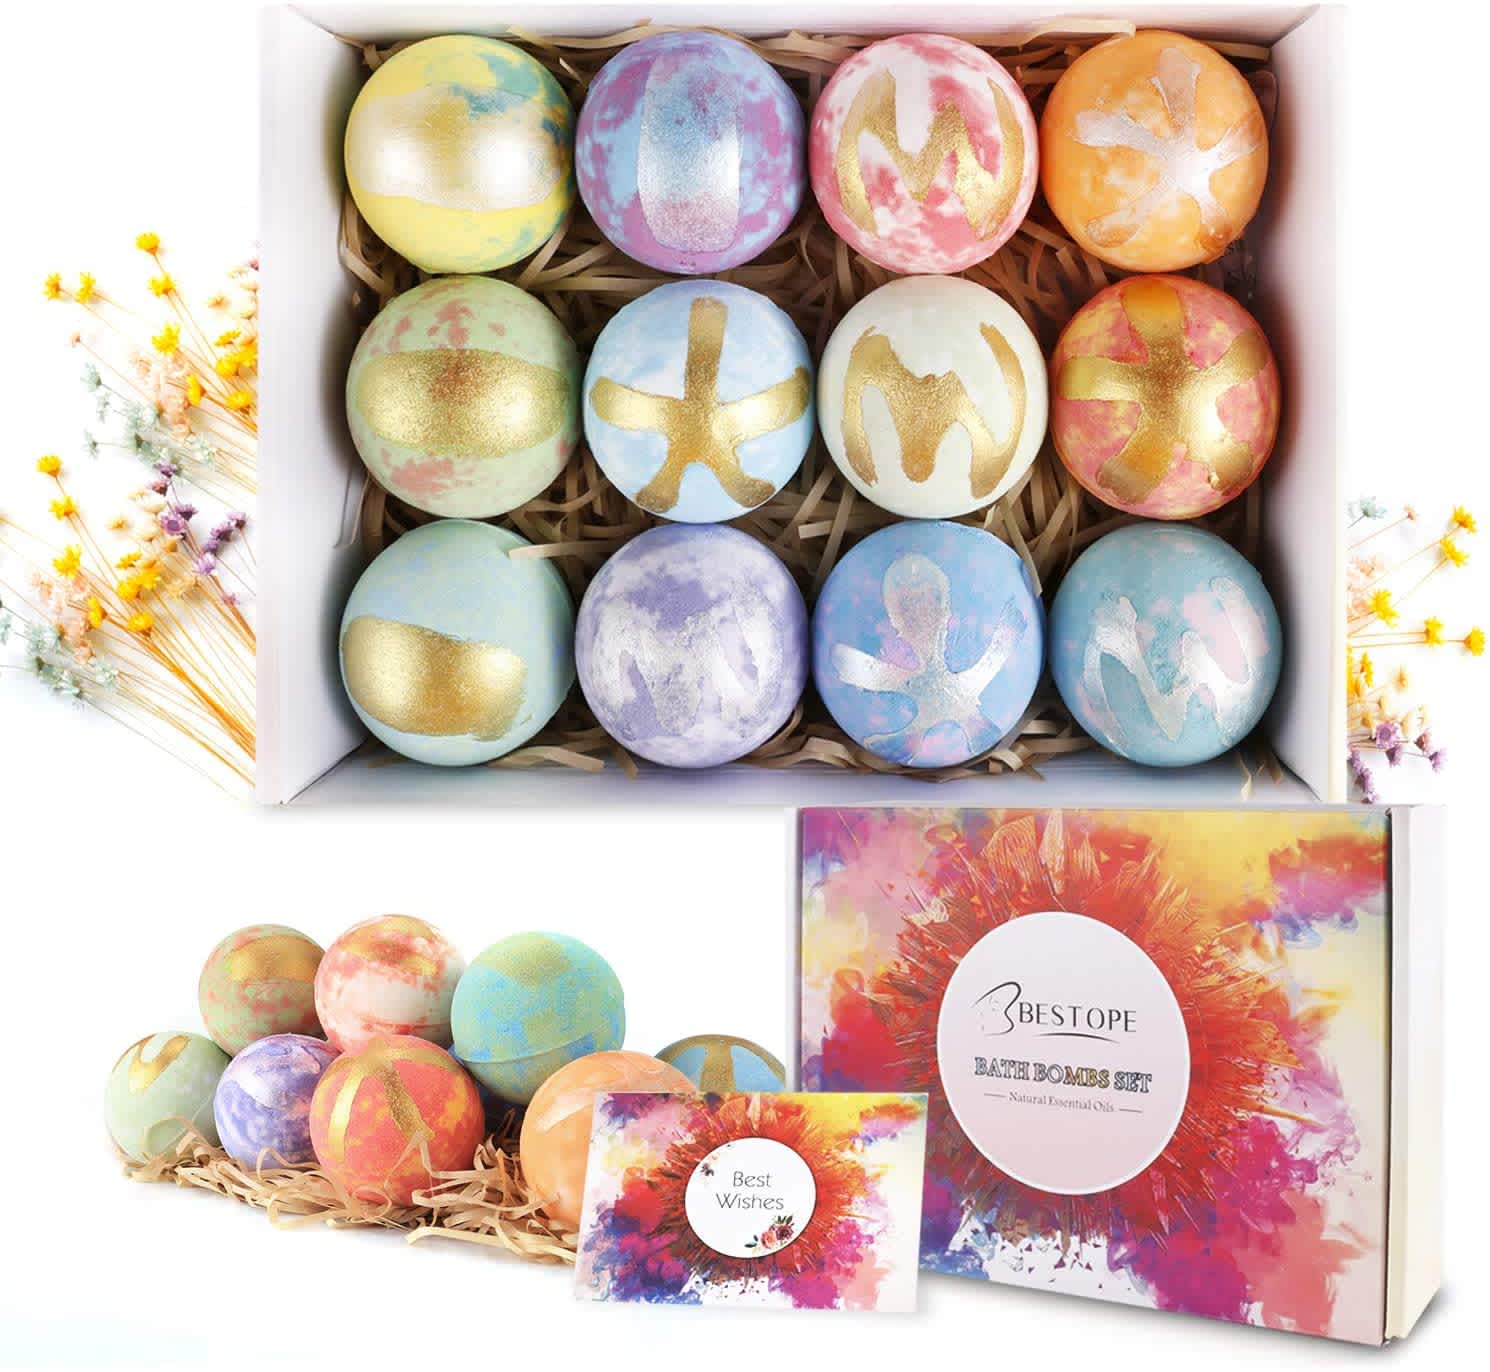 Bestope 12-Piece Bath Bomb Gift Set